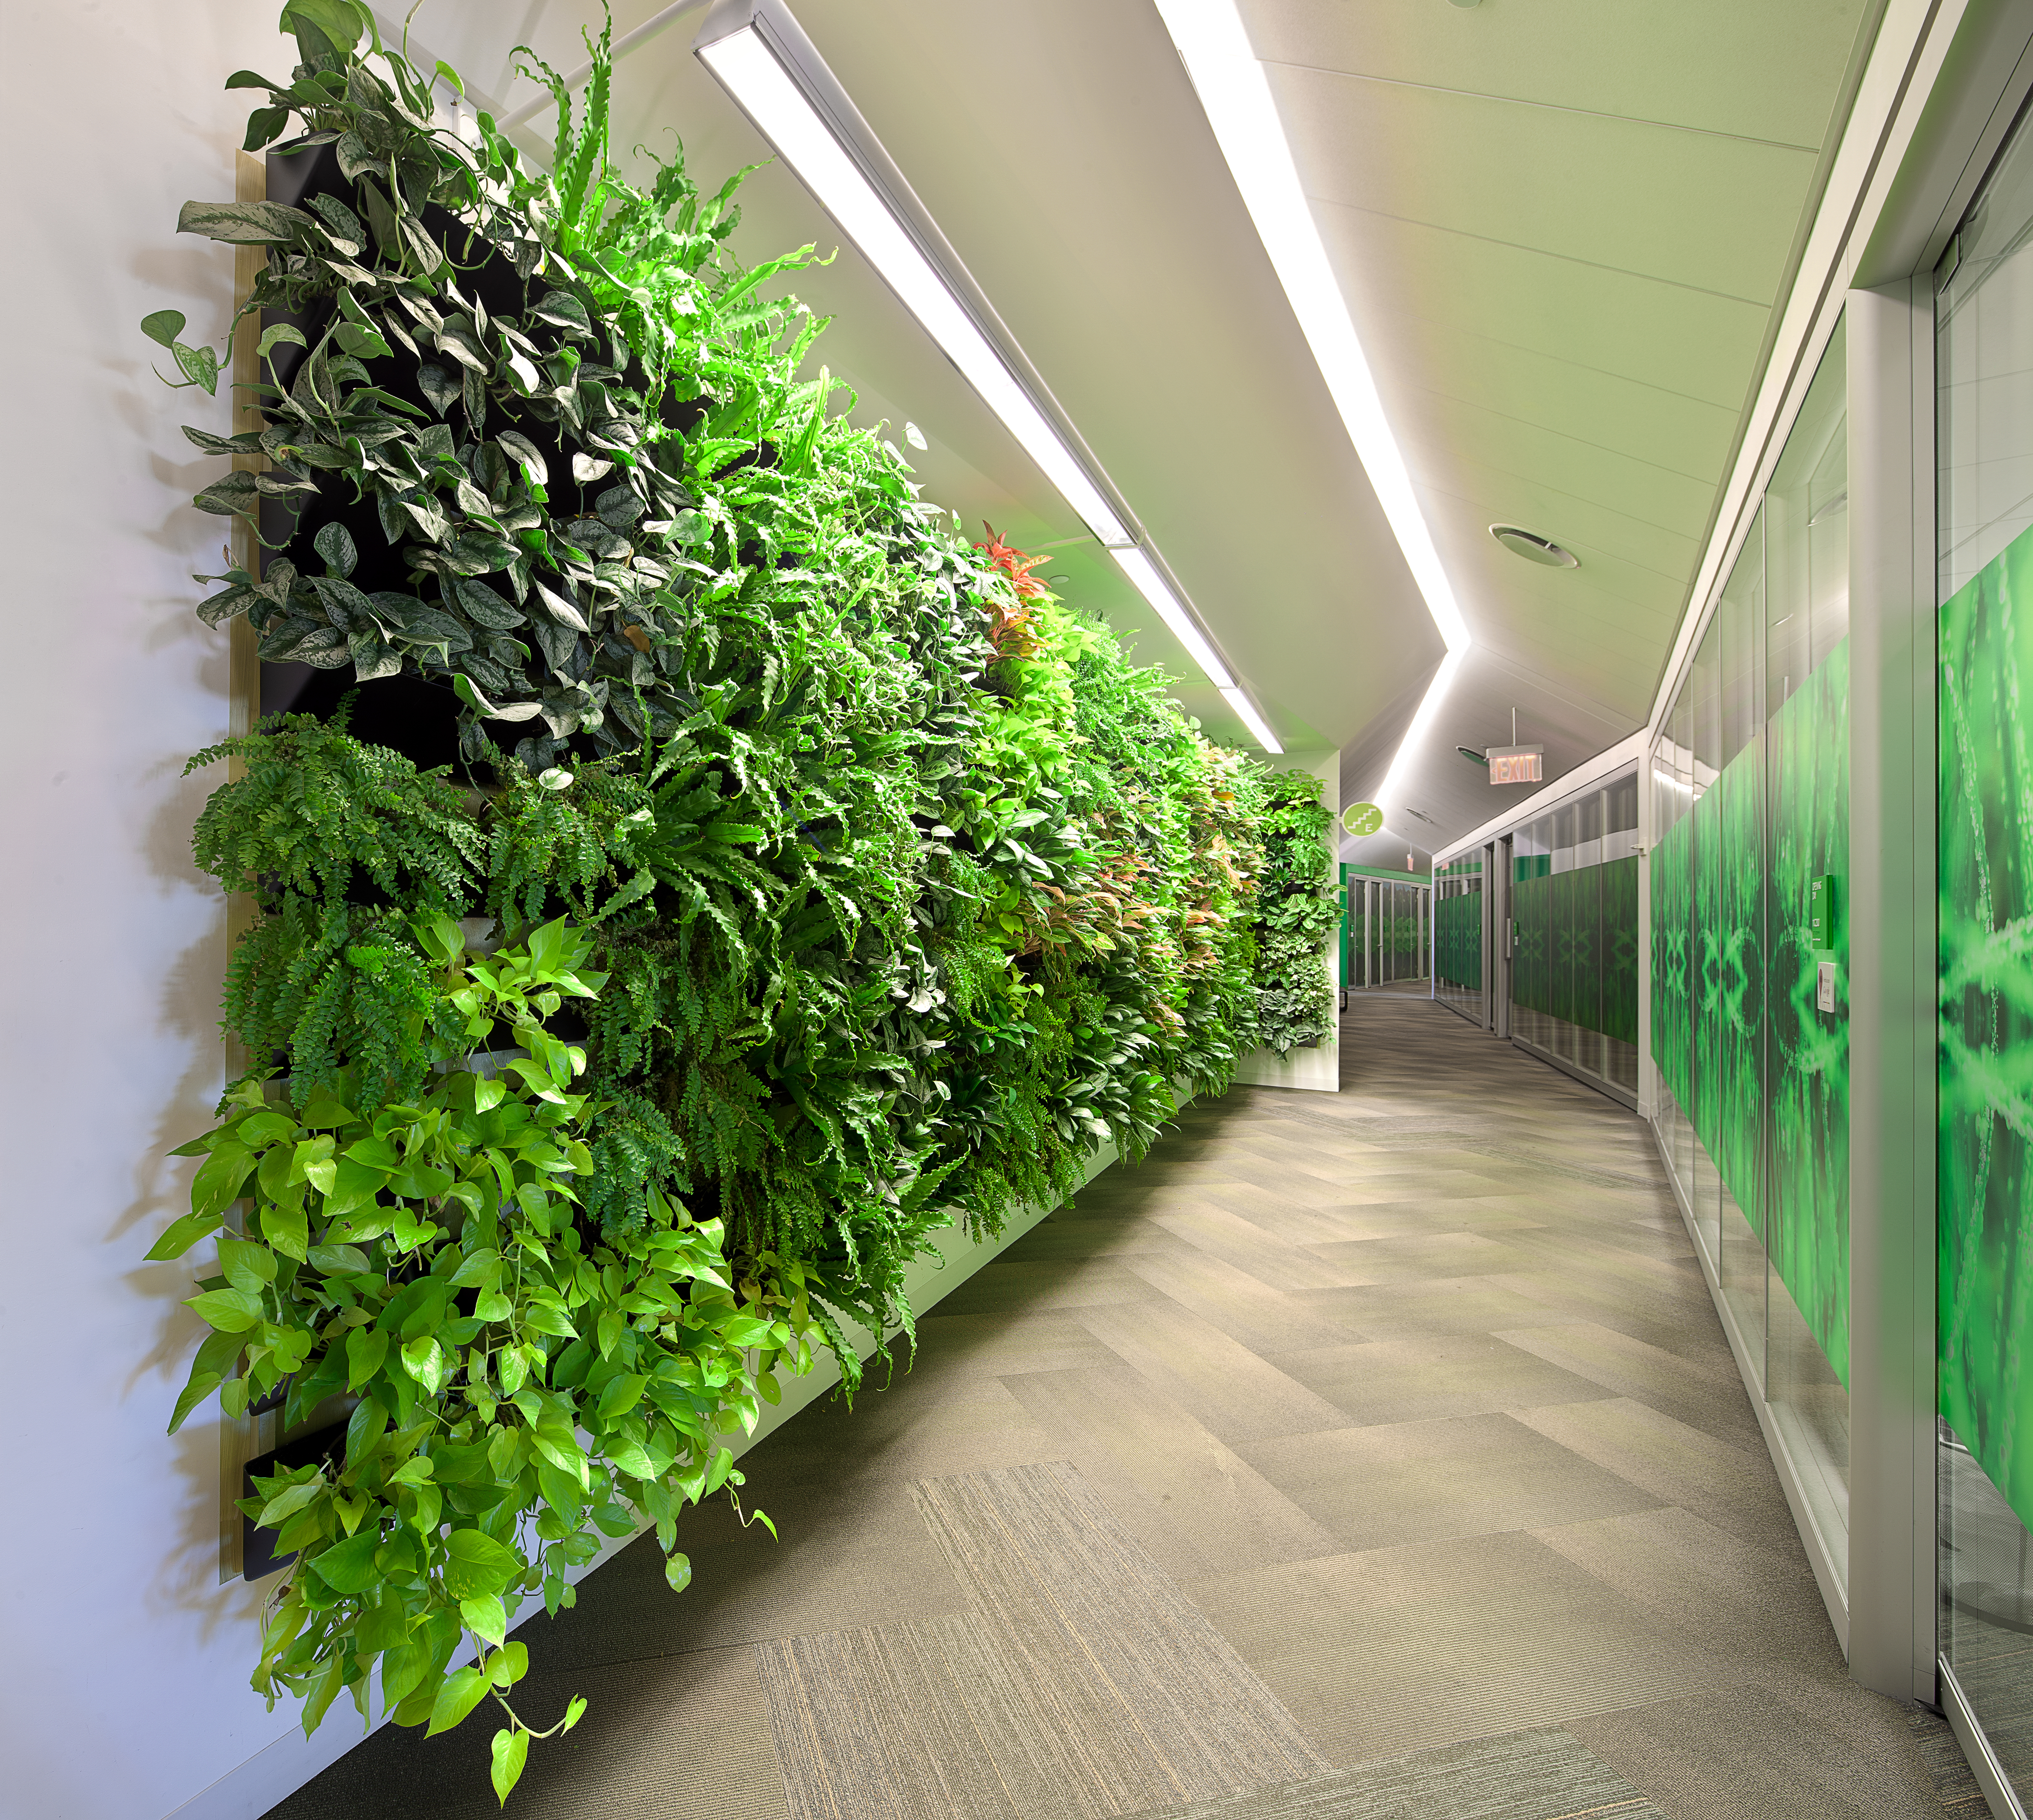 plants for office cubicle. Wall Of Plants Brings Natural Benefits Under Artificial Light For Office Cubicle C